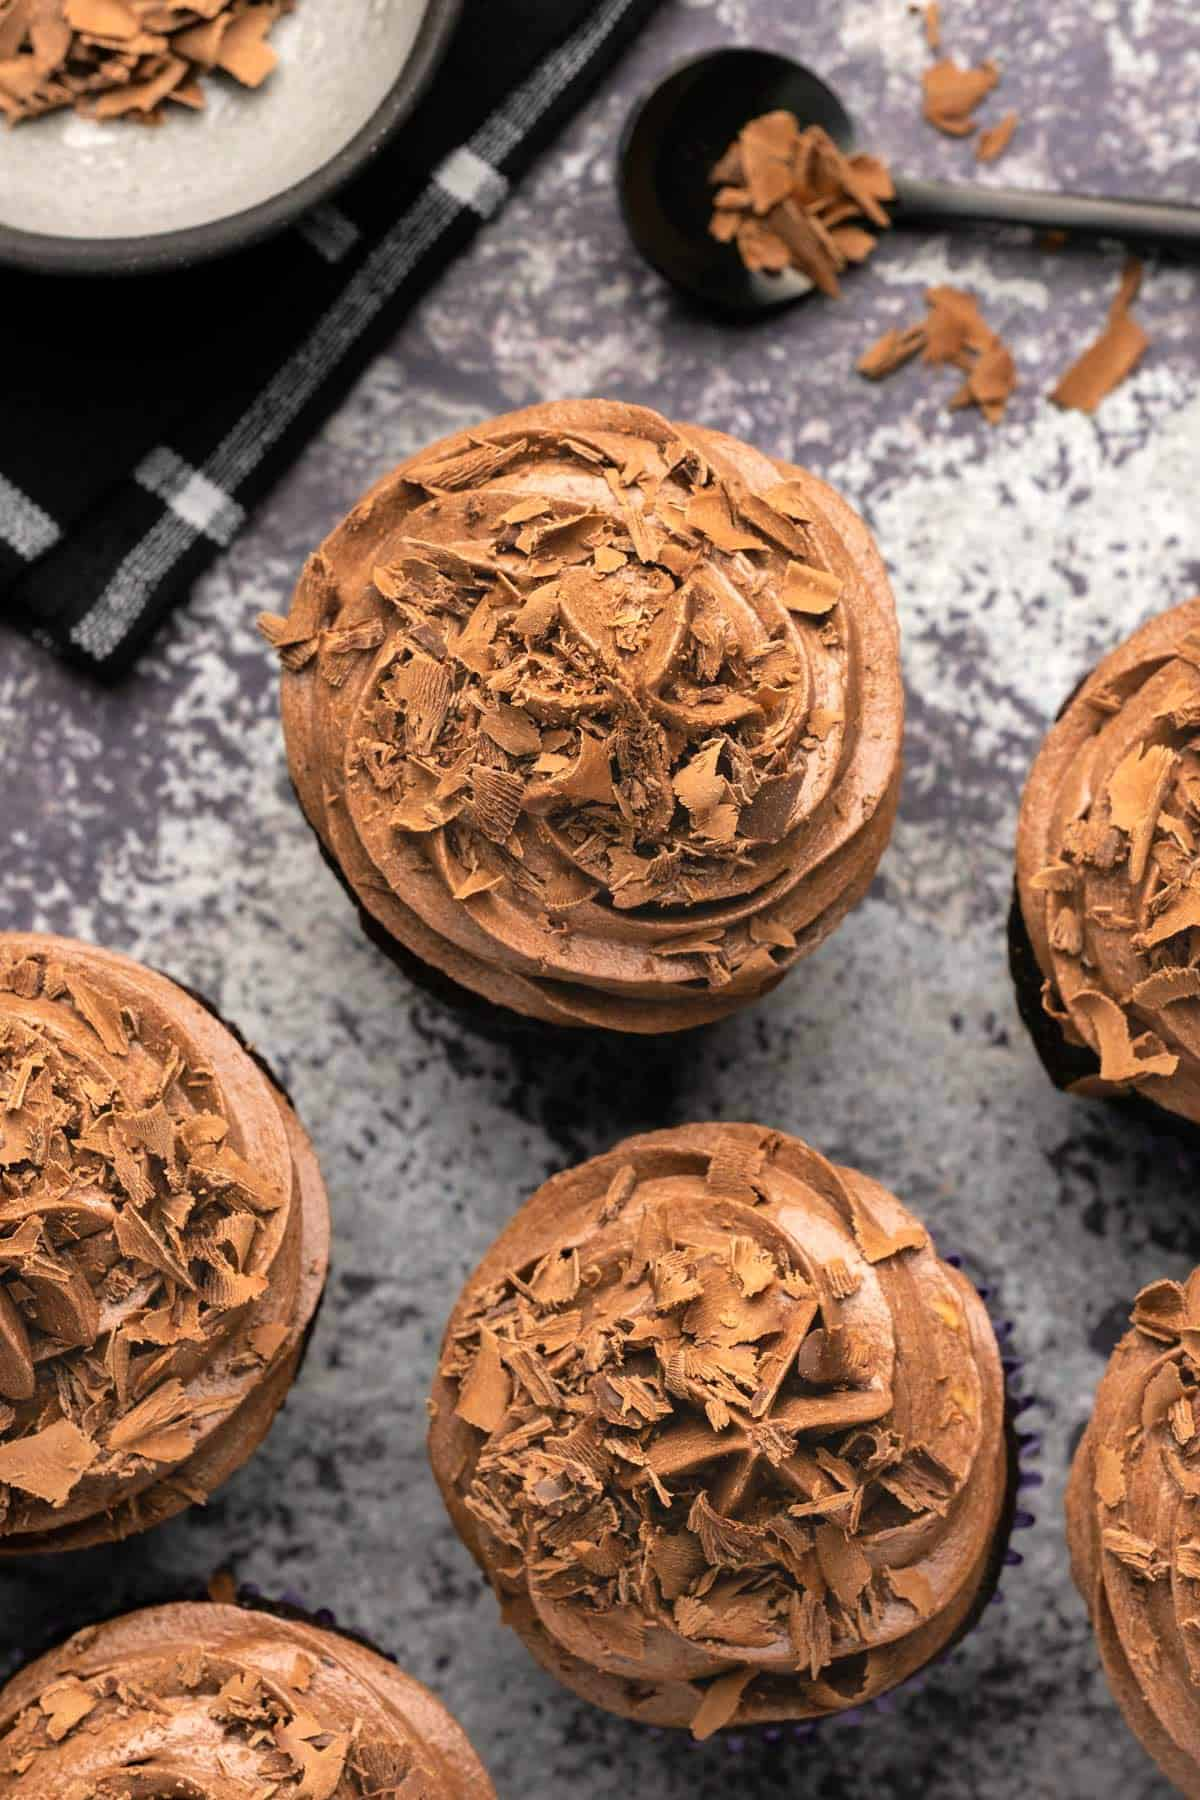 Chocolate cupcakes topped with chocolate buttercream and chocolate flakes.